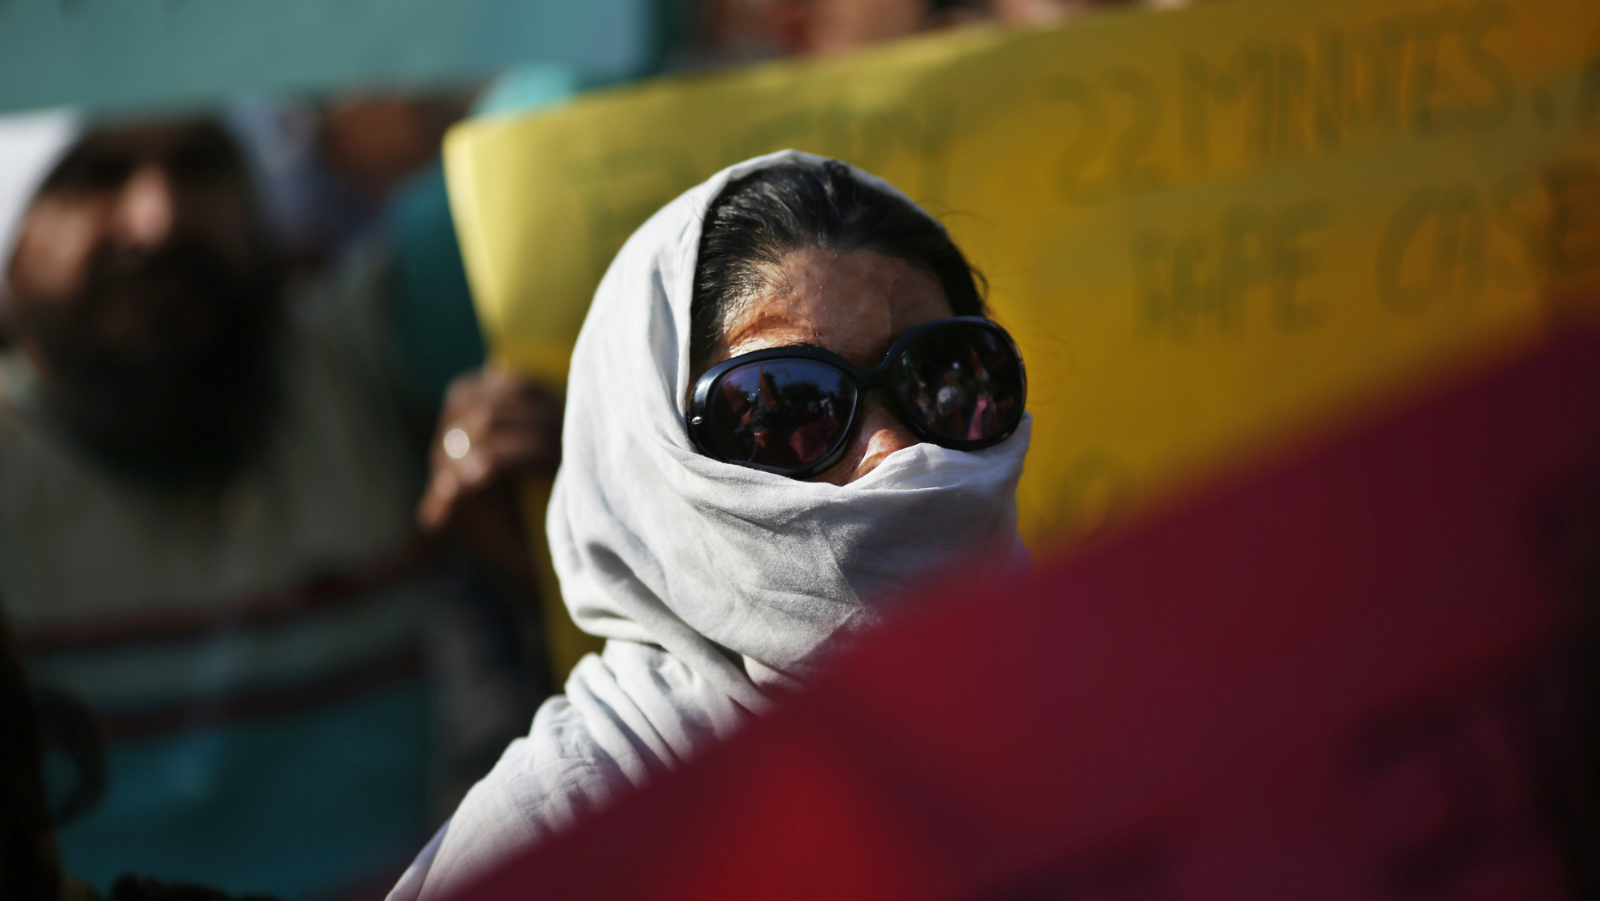 An unidentified woman who had acid thrown upon her face, participates in a protest against the inefficiency of government in punishing rapists as the conviction rate in the entire country remains extremely low in New Delhi, India, Friday, Dec. 21, 2012. The hours-long gang-rape and near-fatal beating of a 23-year-old student by six men on a bus in New Delhi recently has triggered outrage and anger across the country as Indians demanded action from authorities who have long ignored persistent violence and harassment against women. (AP Photo/ Saurabh Das)